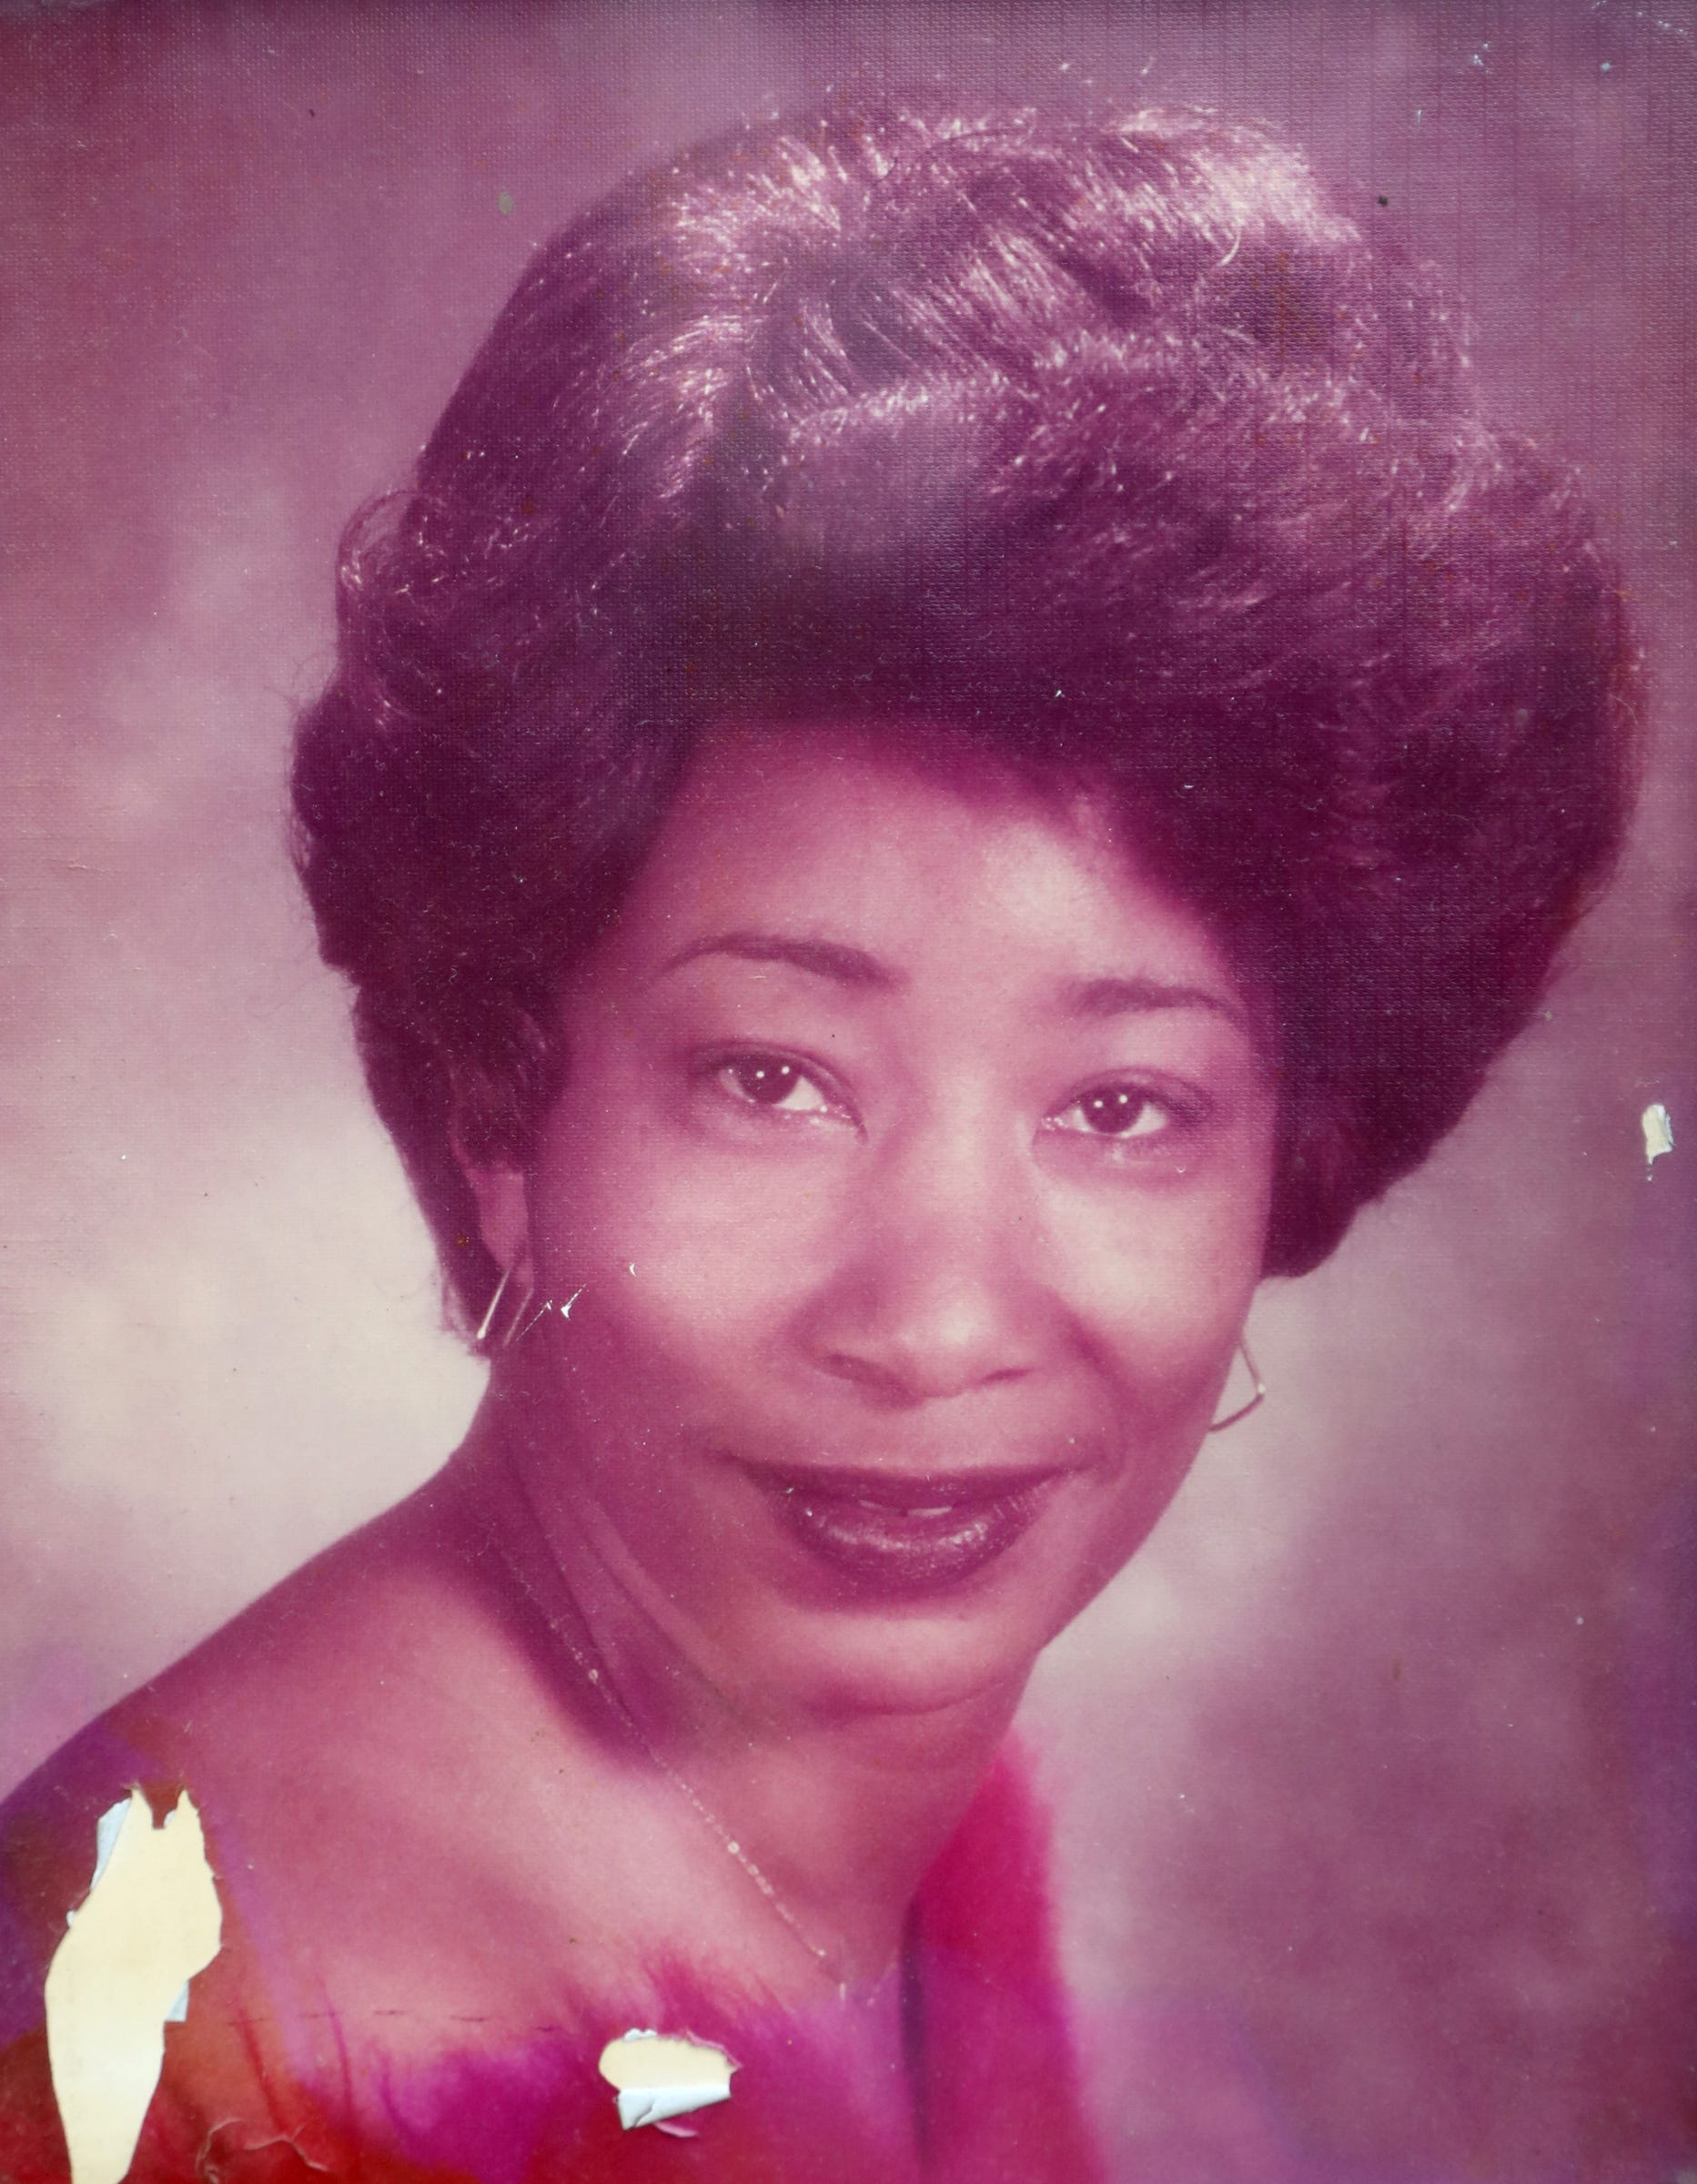 A handout photo of Mildred Hill, who died on April 7, 2020, after being diagnosed with COVID-19.